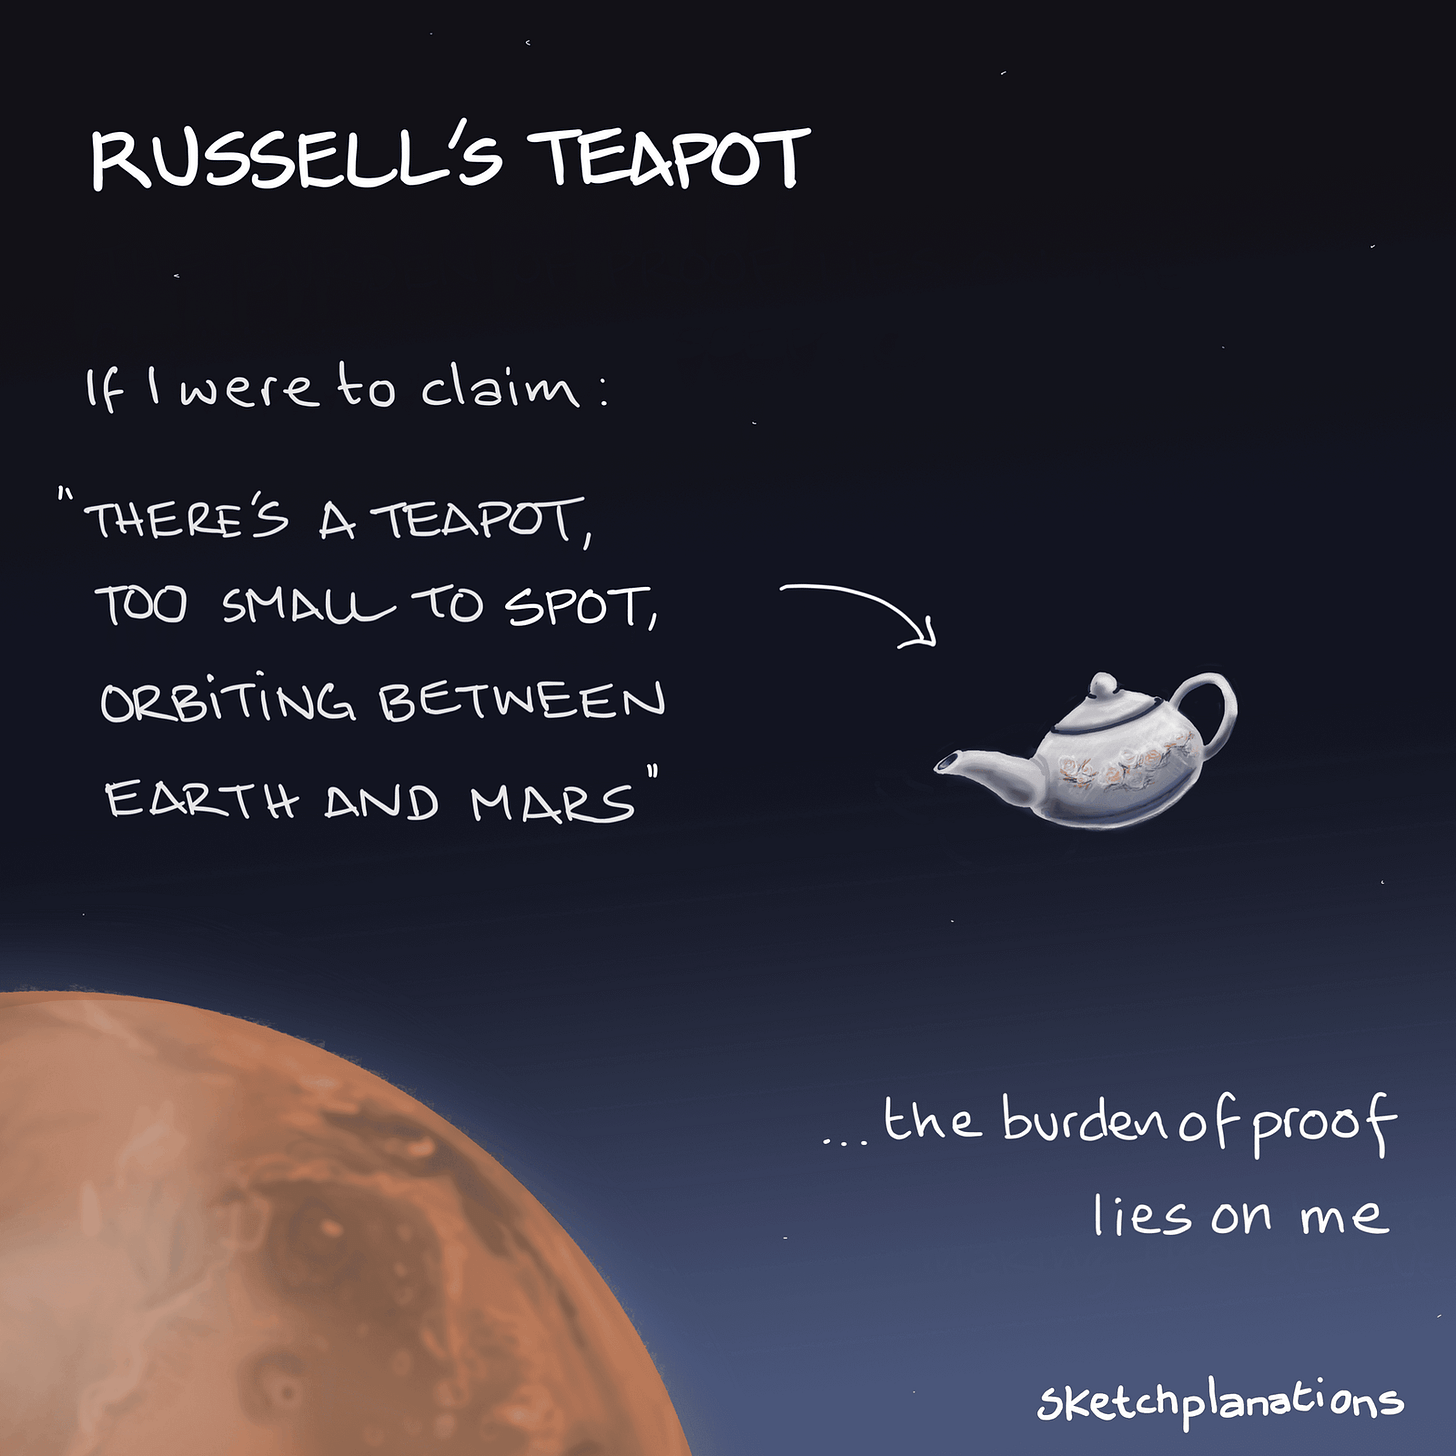 Russell's Teapot - Sketchplanations